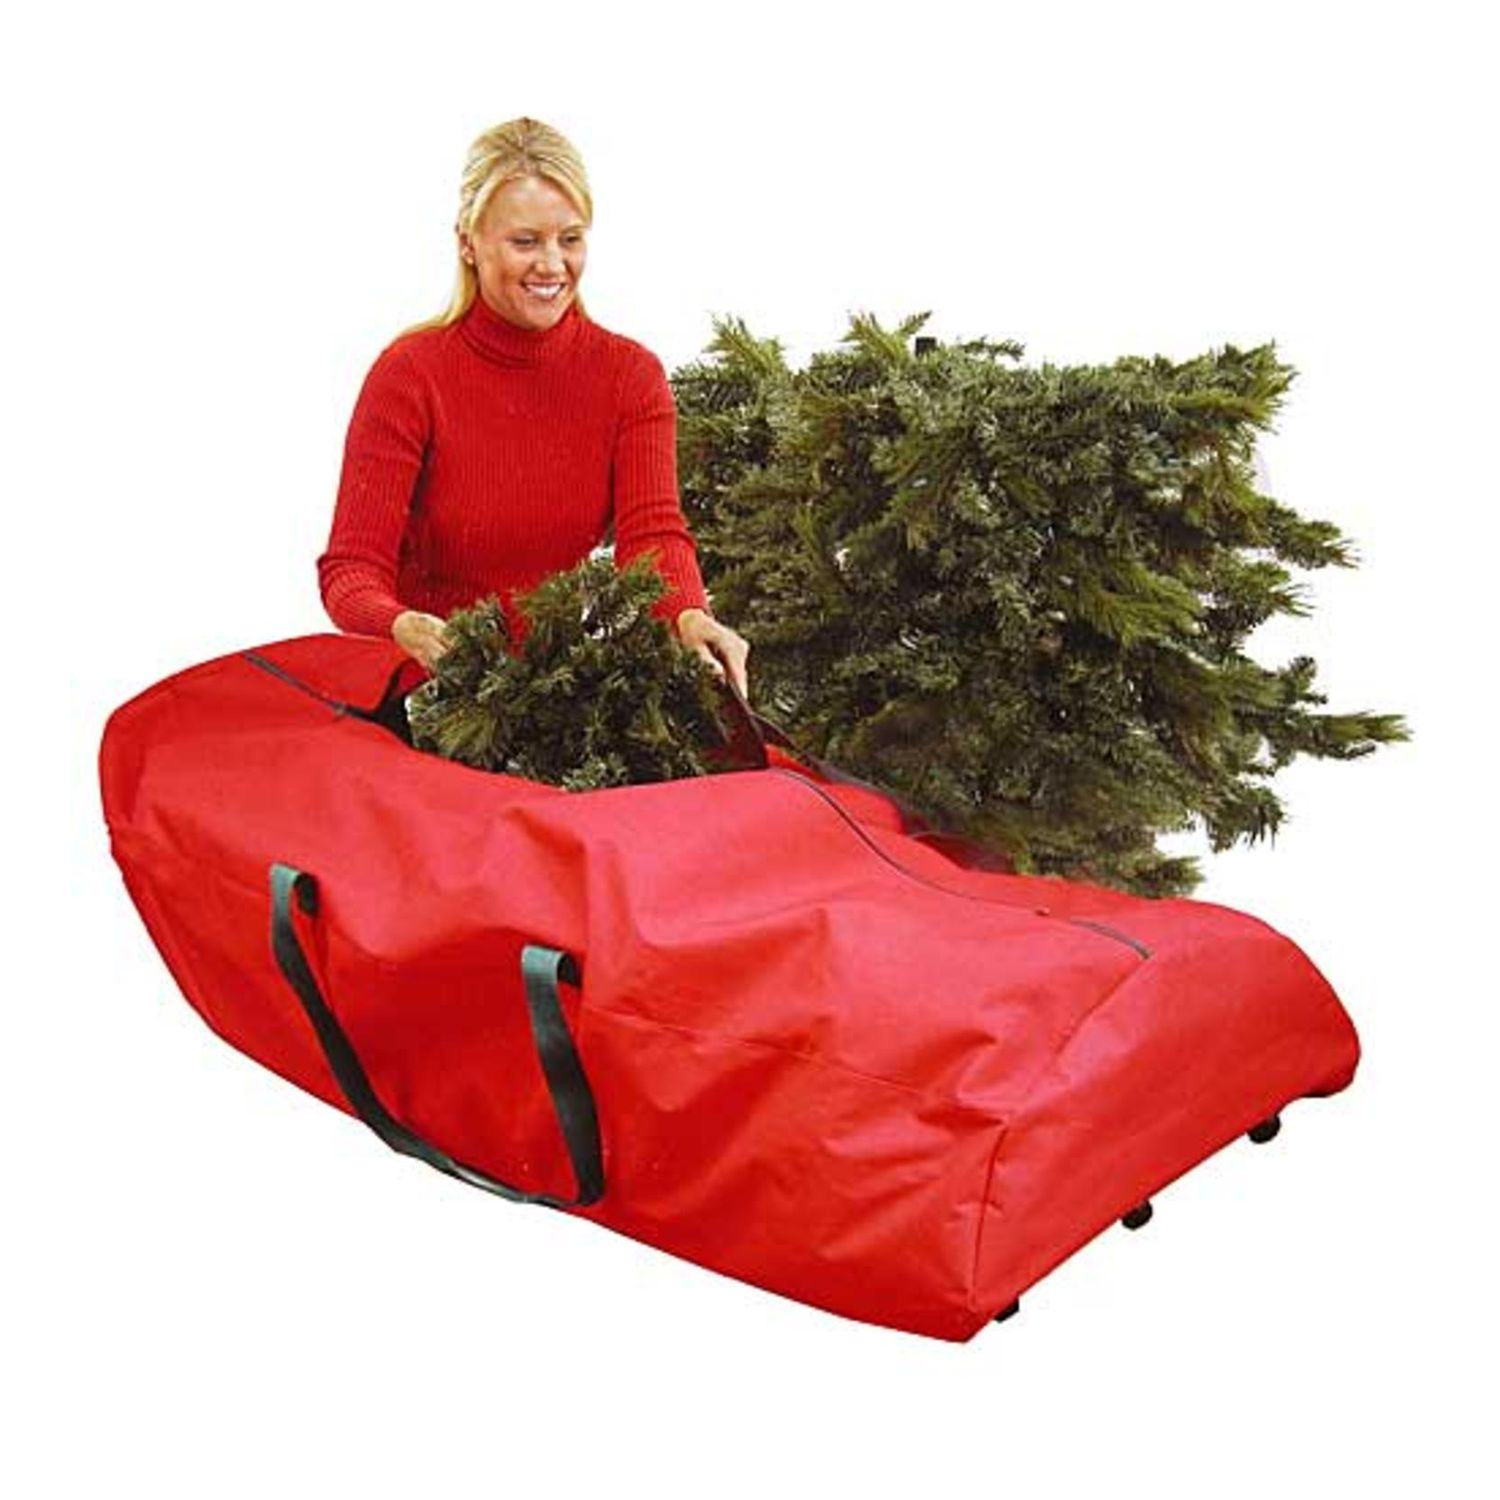 Gentil Heavy Duty Rolling Artificial Christmas Tree Storage Bag